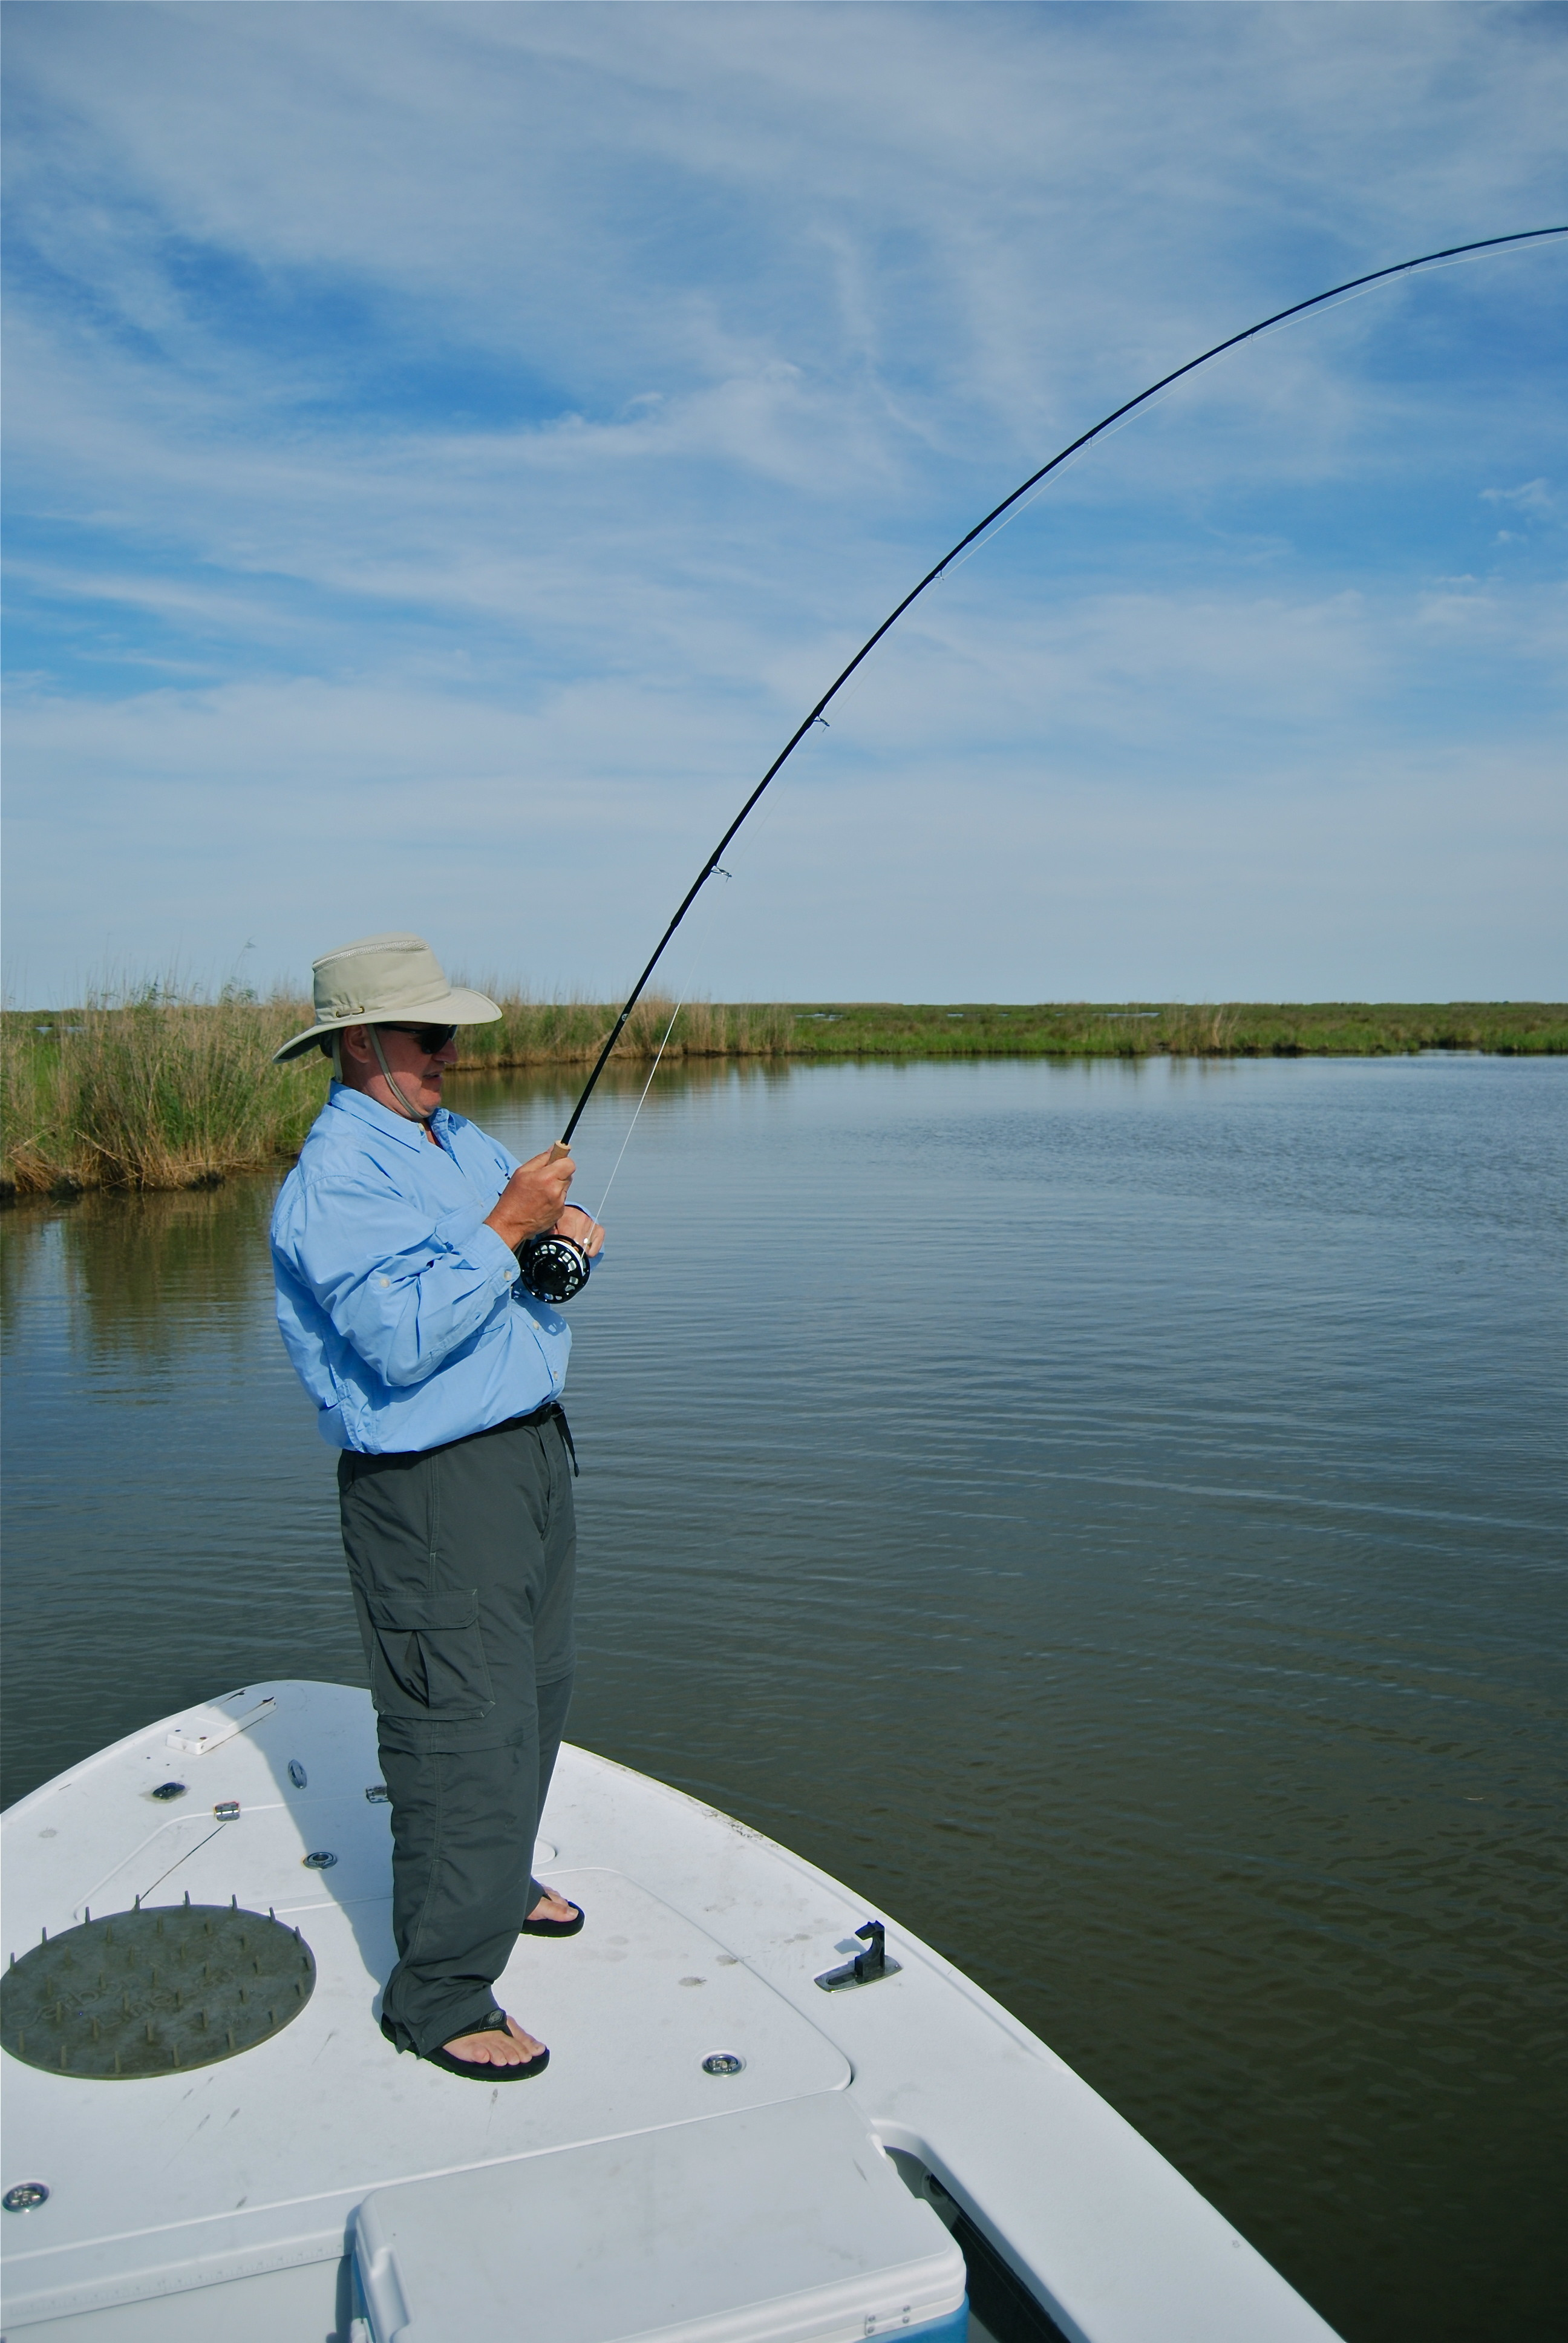 Cajun Fishing Adventures: INCLUSIVE FISHING - 1 PERSON TO A BOAT